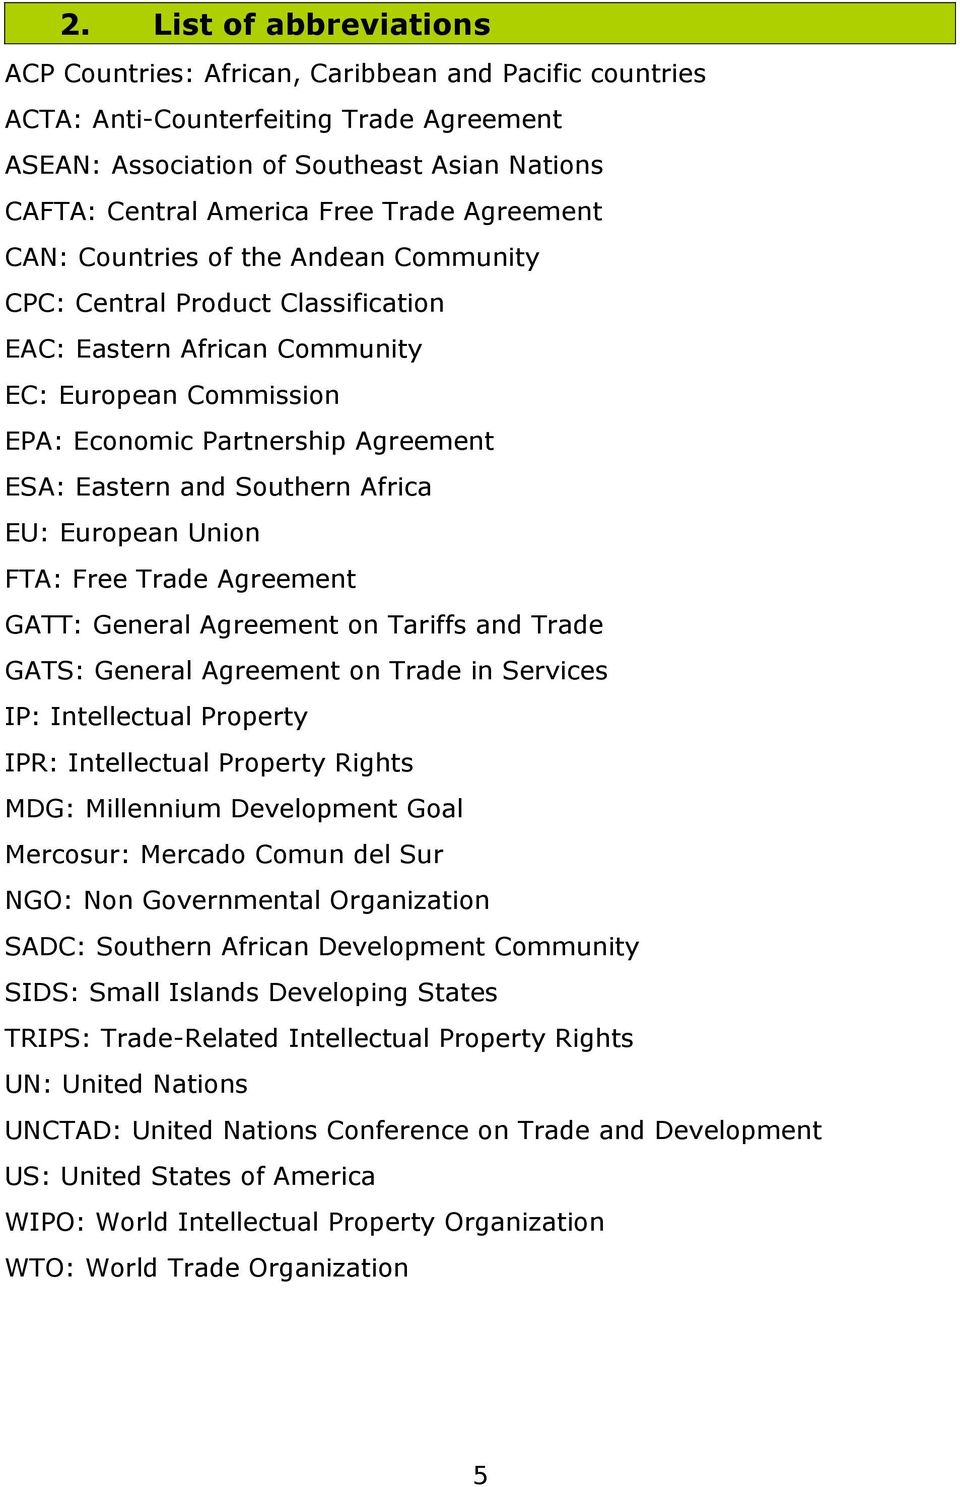 Southern Africa EU: European Union FTA: Free Trade Agreement GATT: General Agreement on Tariffs and Trade GATS: General Agreement on Trade in Services IP: Intellectual Property IPR: Intellectual